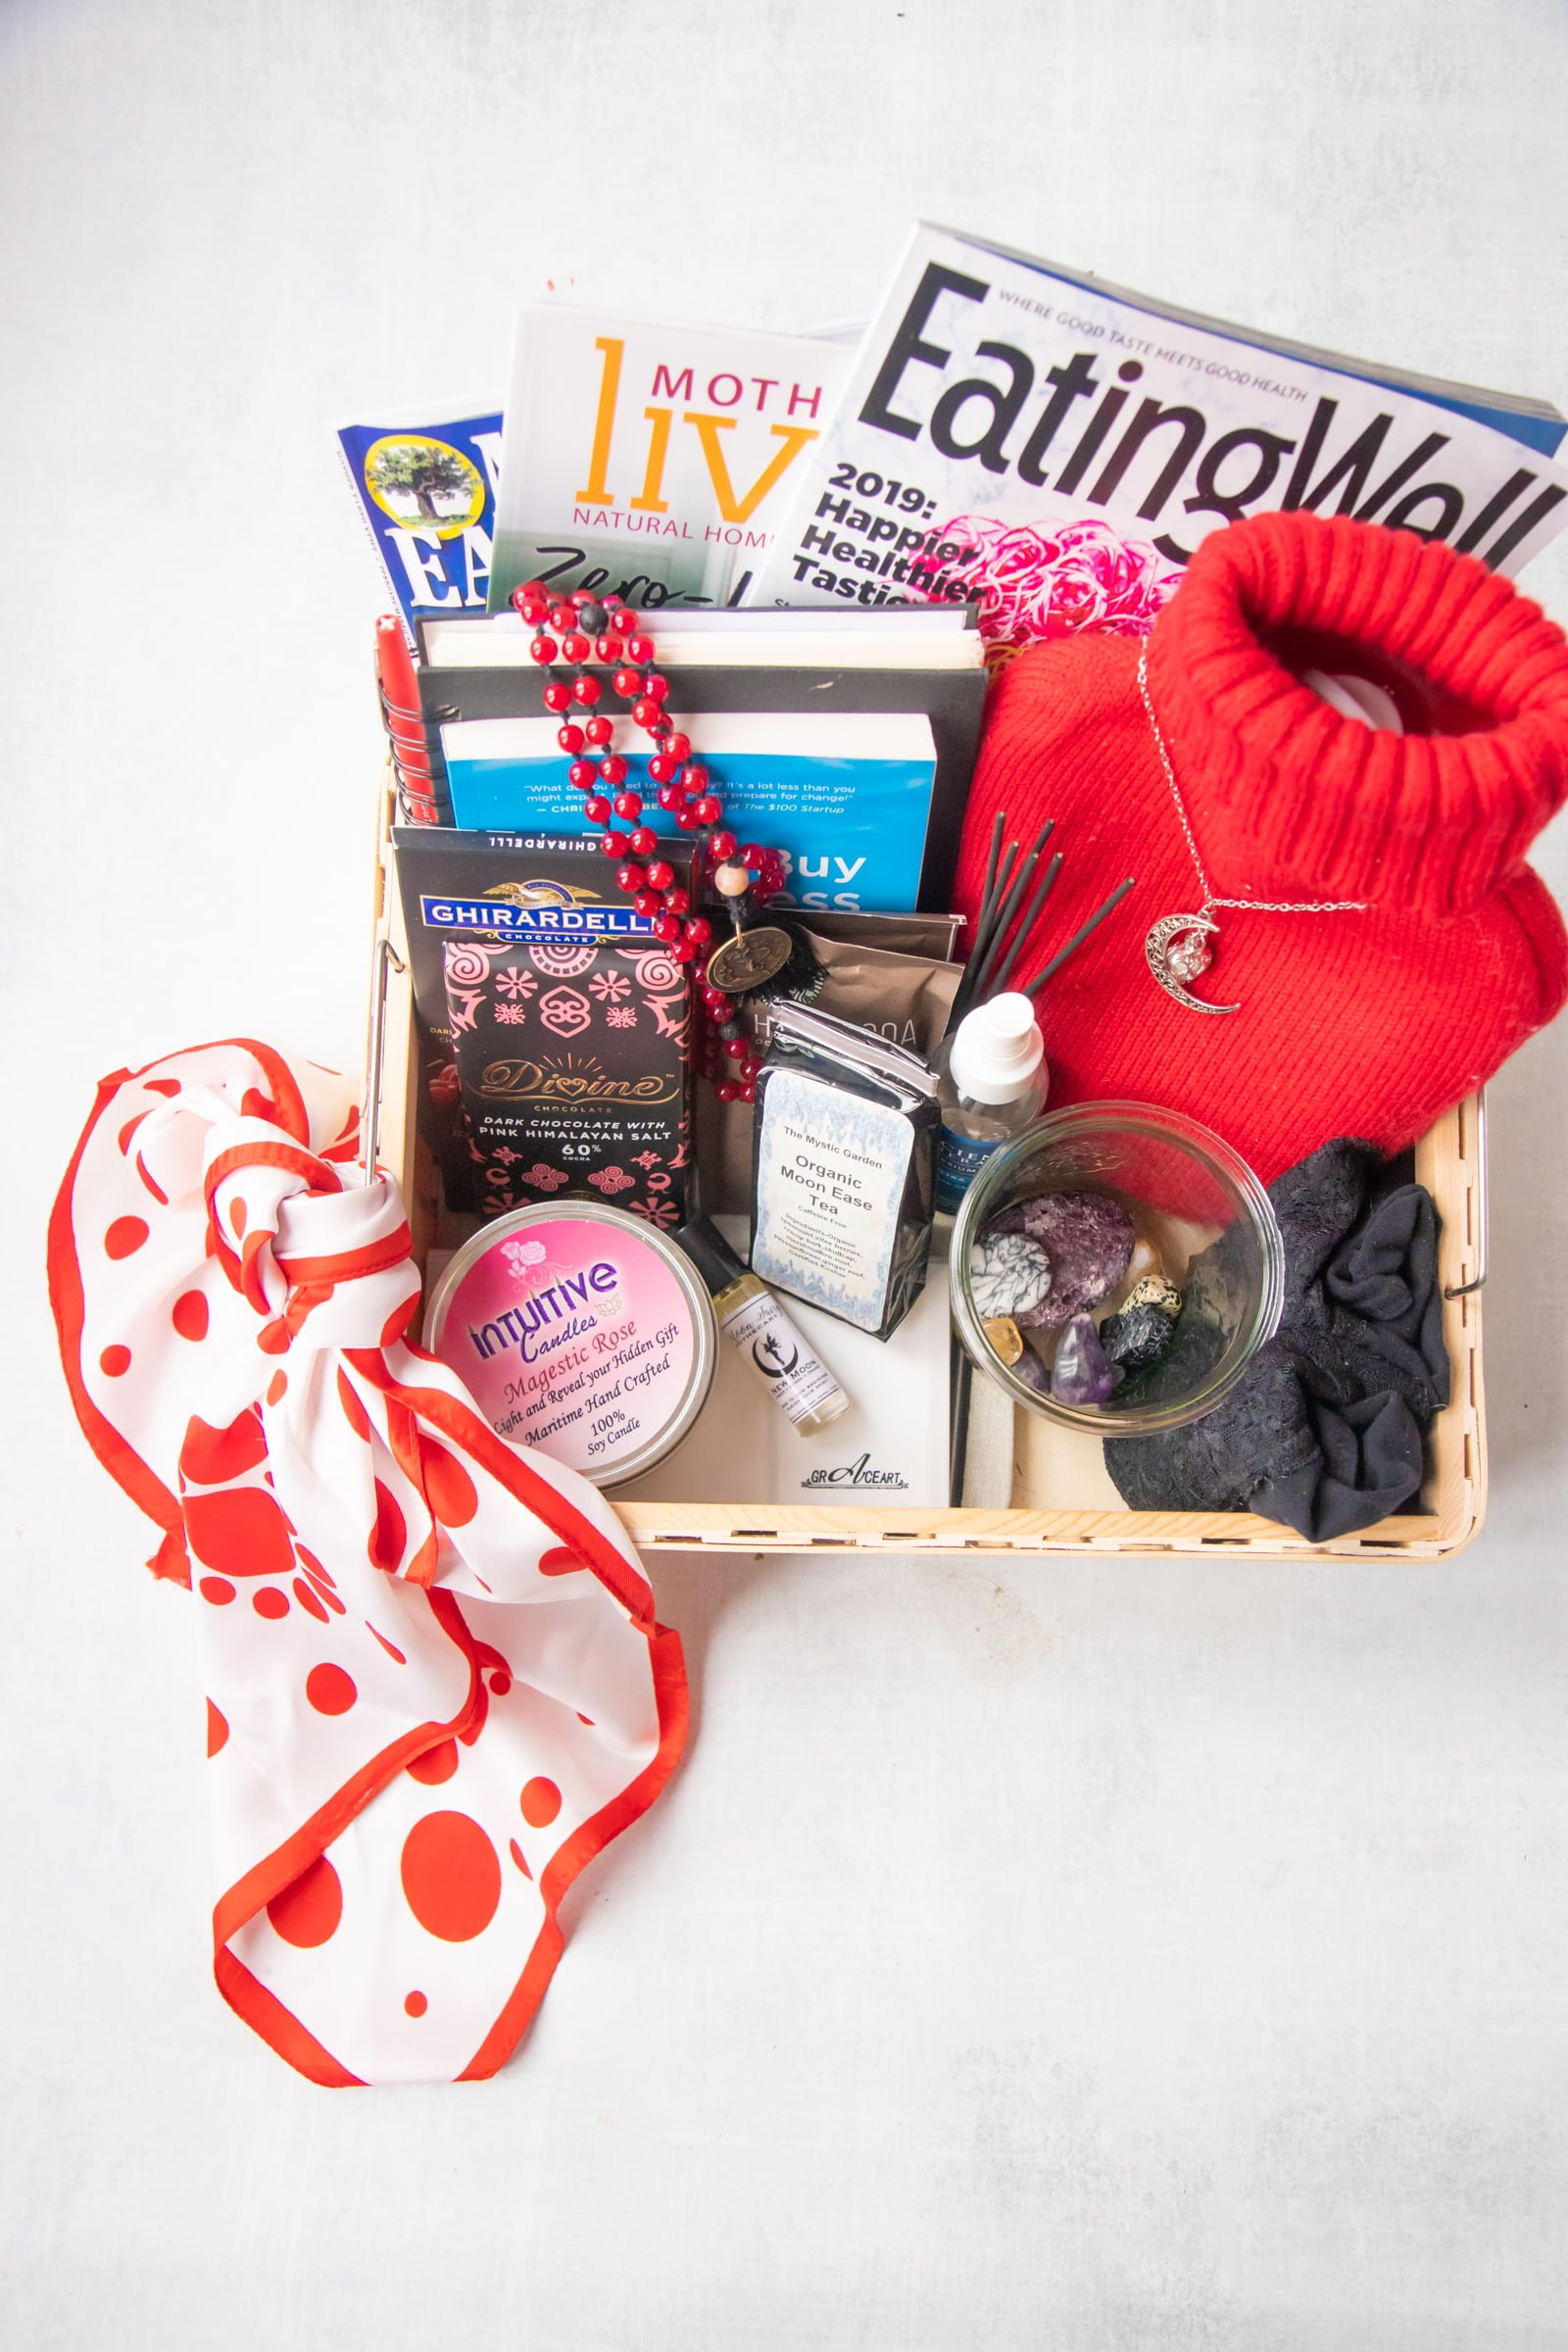 A bleed box, filled with all sorts of goodies - a red and white scarf, a candle, crystals, hot water bottle, magazines, books, and chocolate.